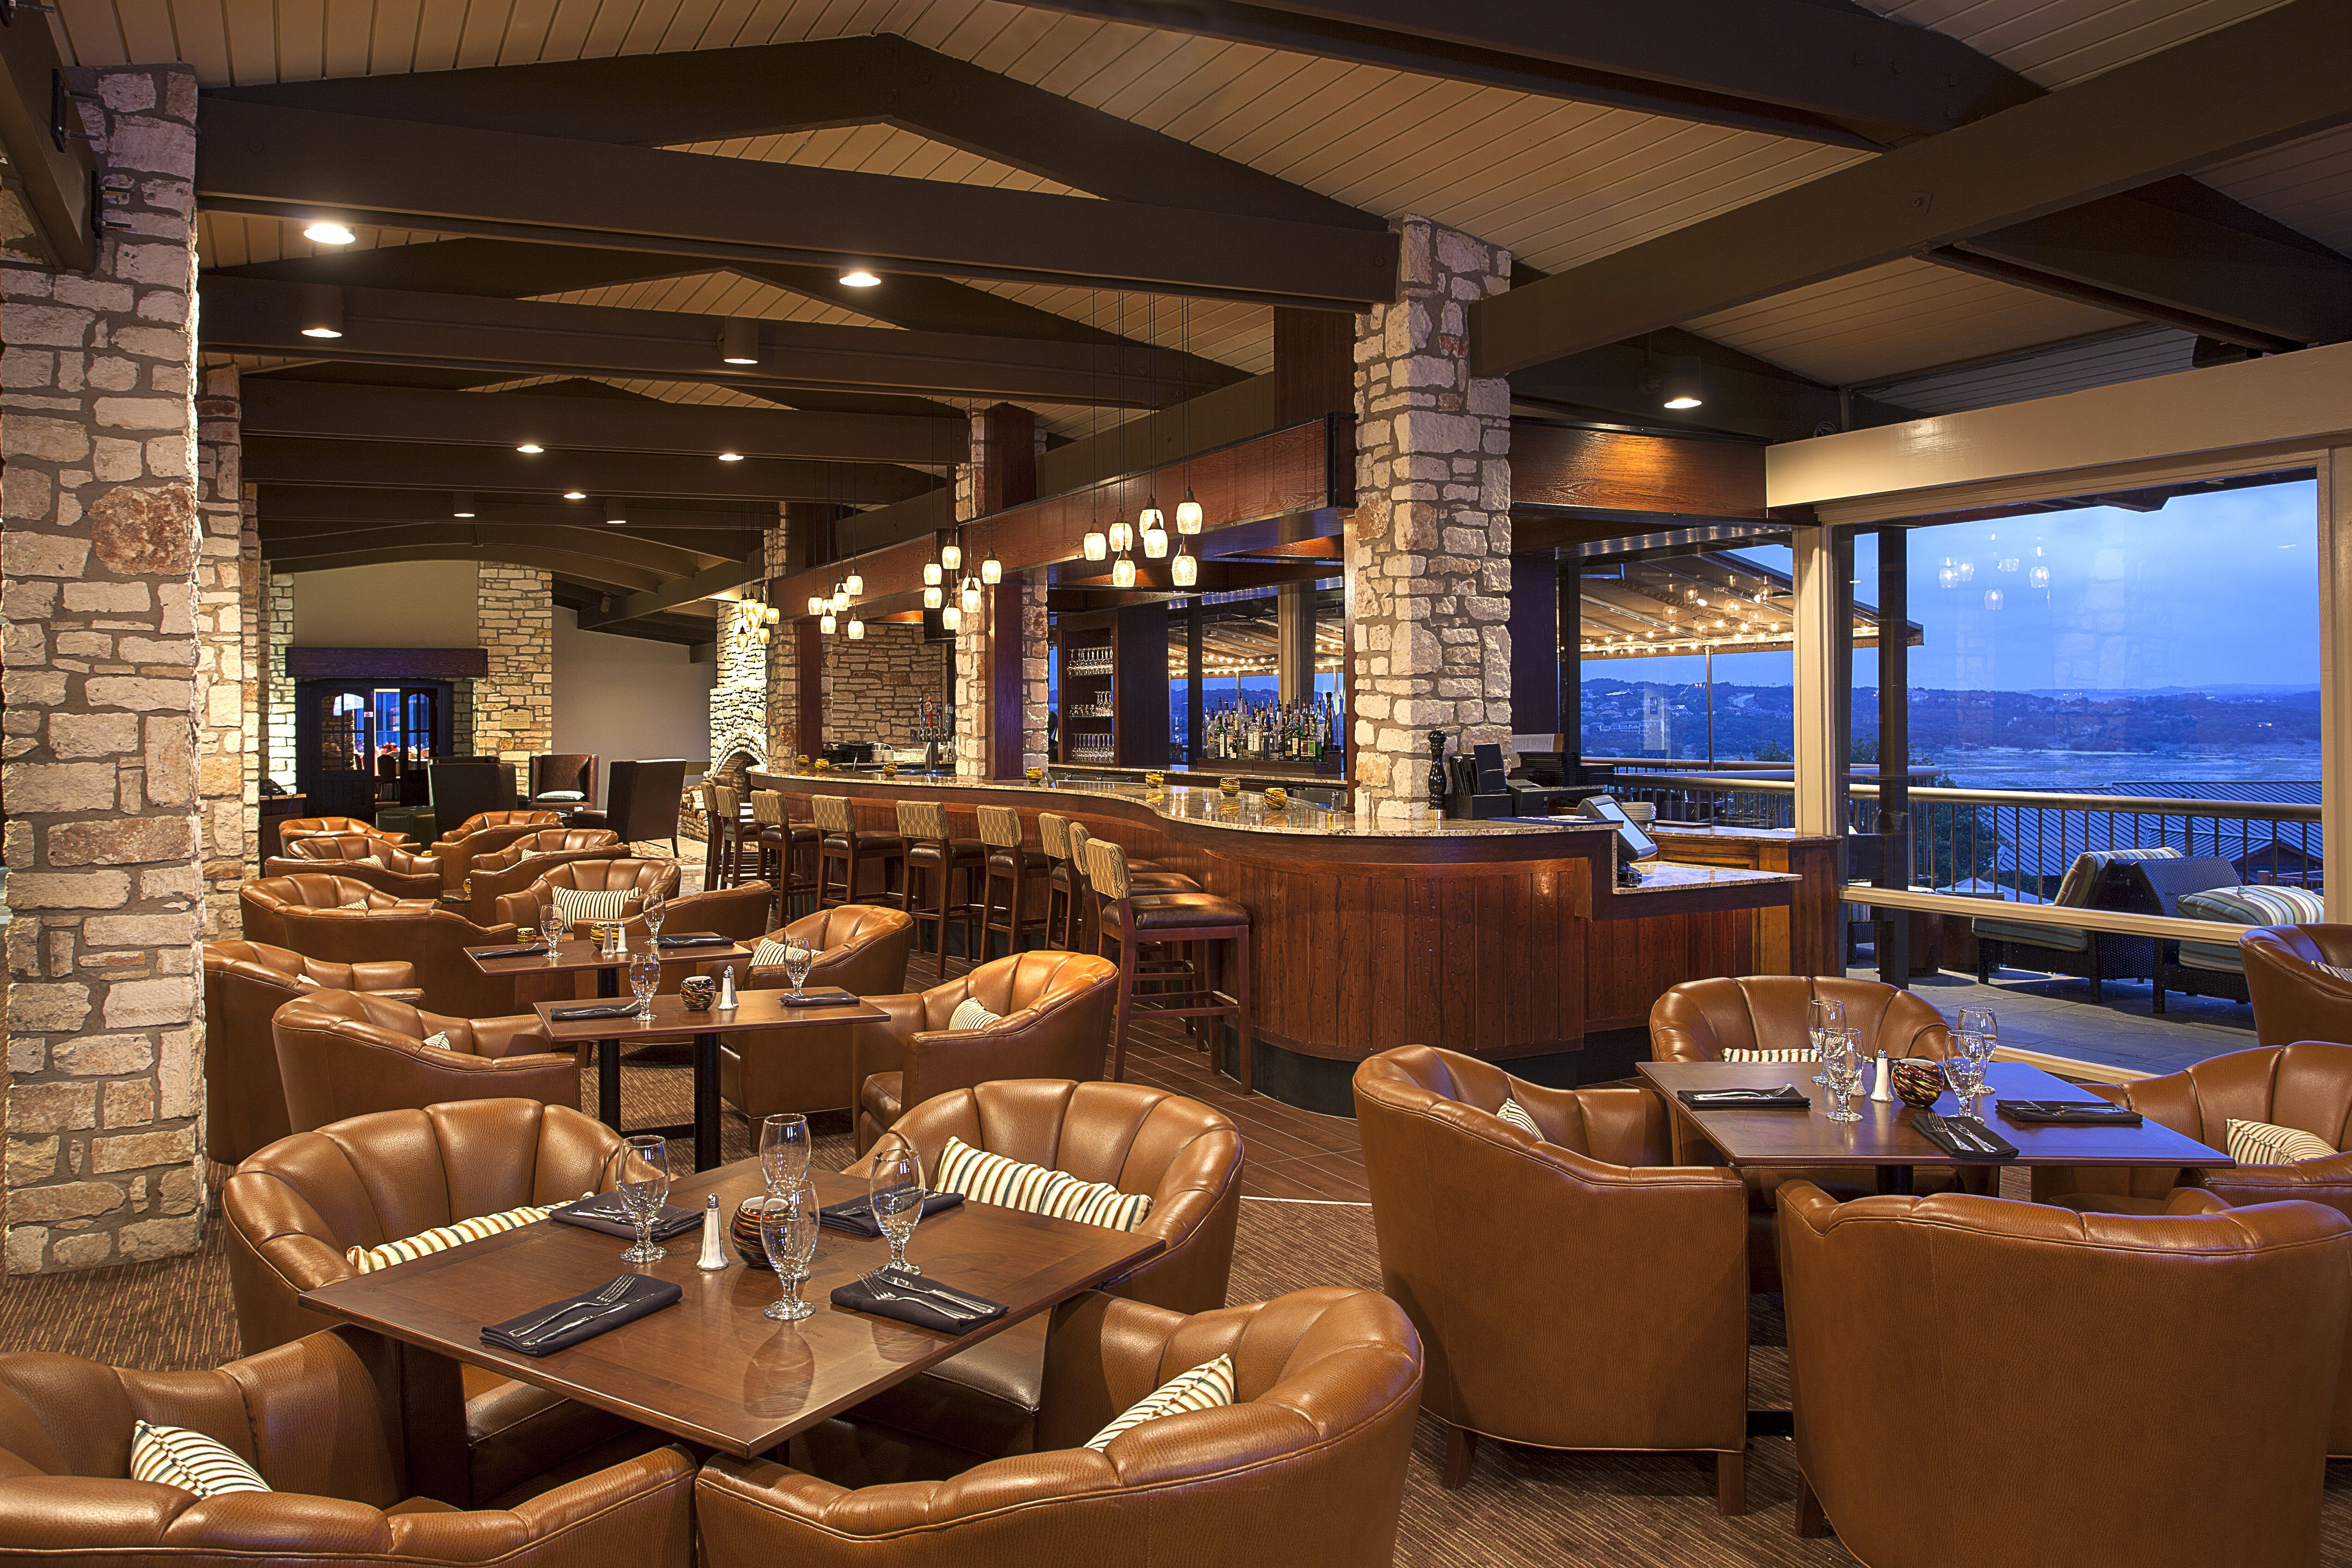 TR Restaurant and Lounge at The Lakeway Resort & Spa